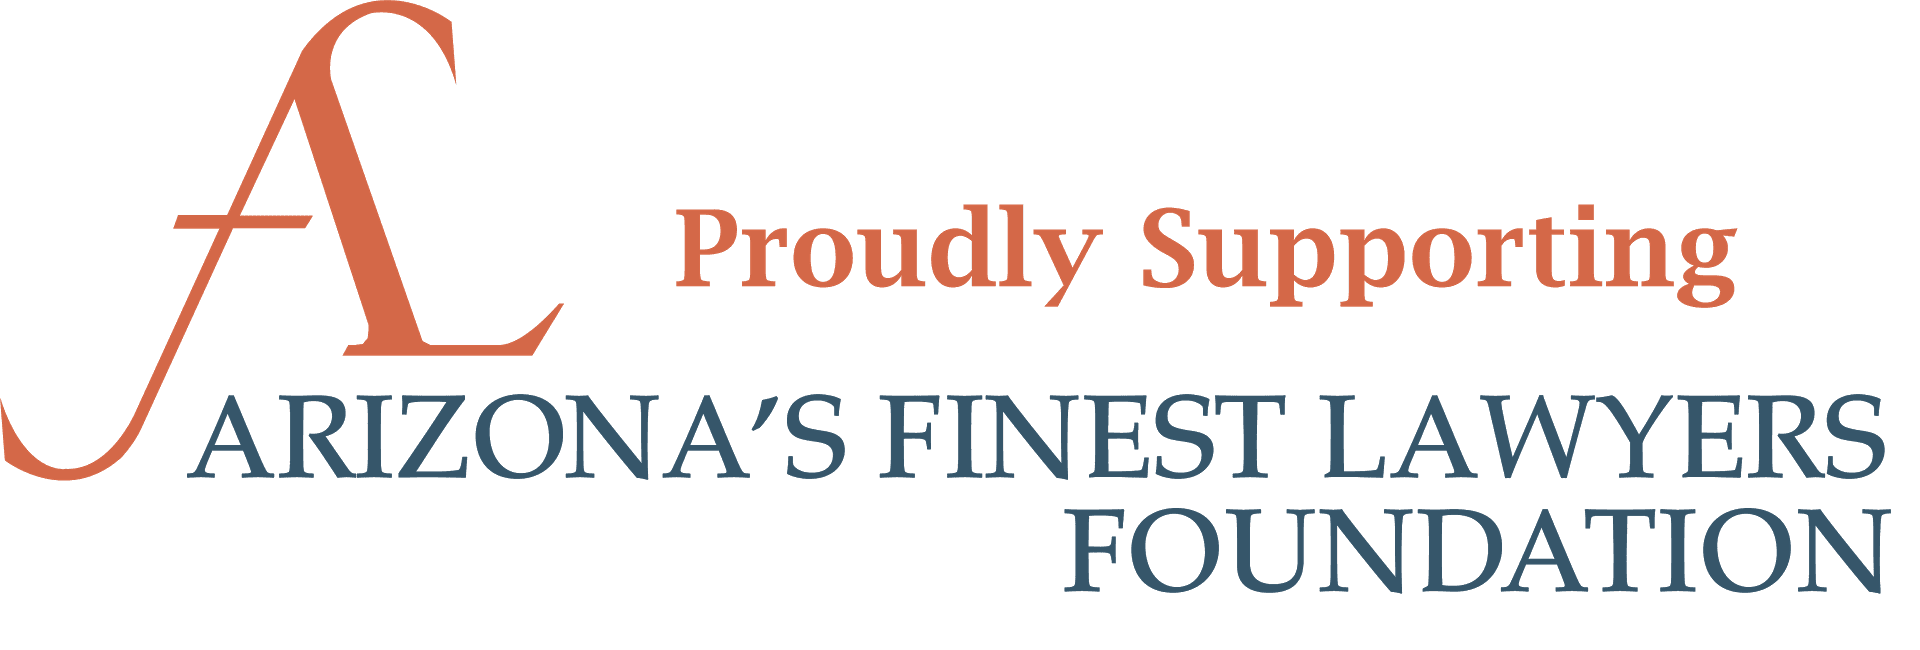 ArizonaS Finest Lawyers Foundation